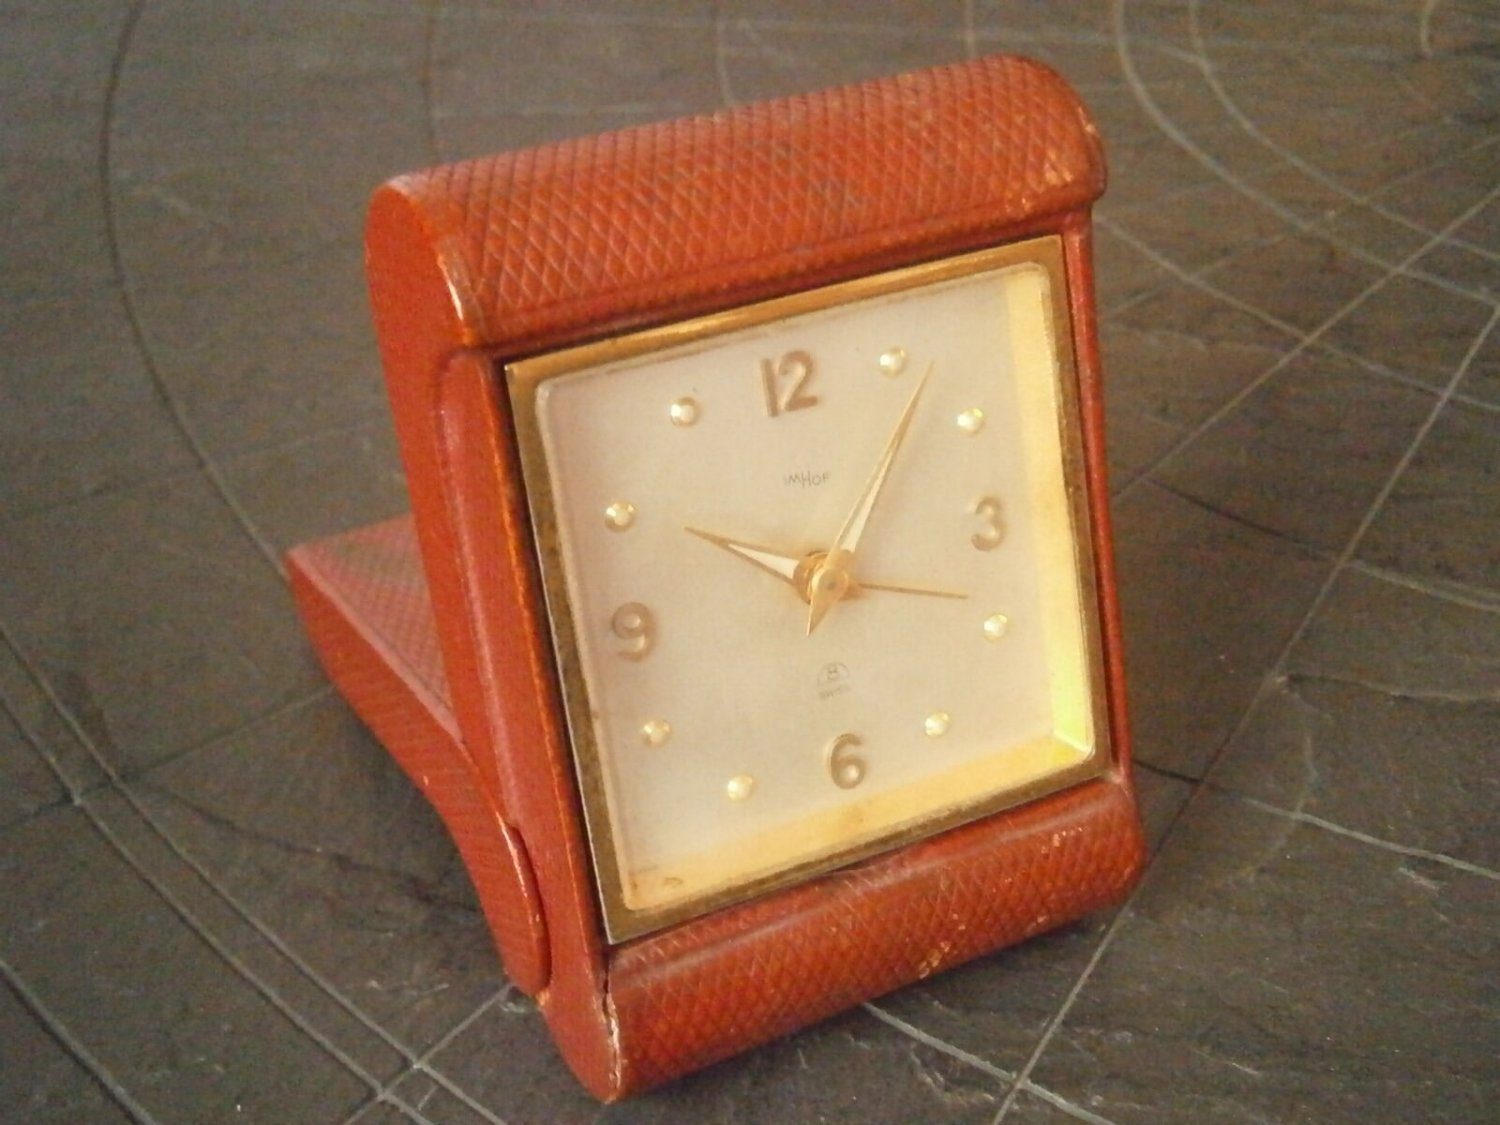 IMHOF SWISS alarm clock for travel or desk working Original from 1950s